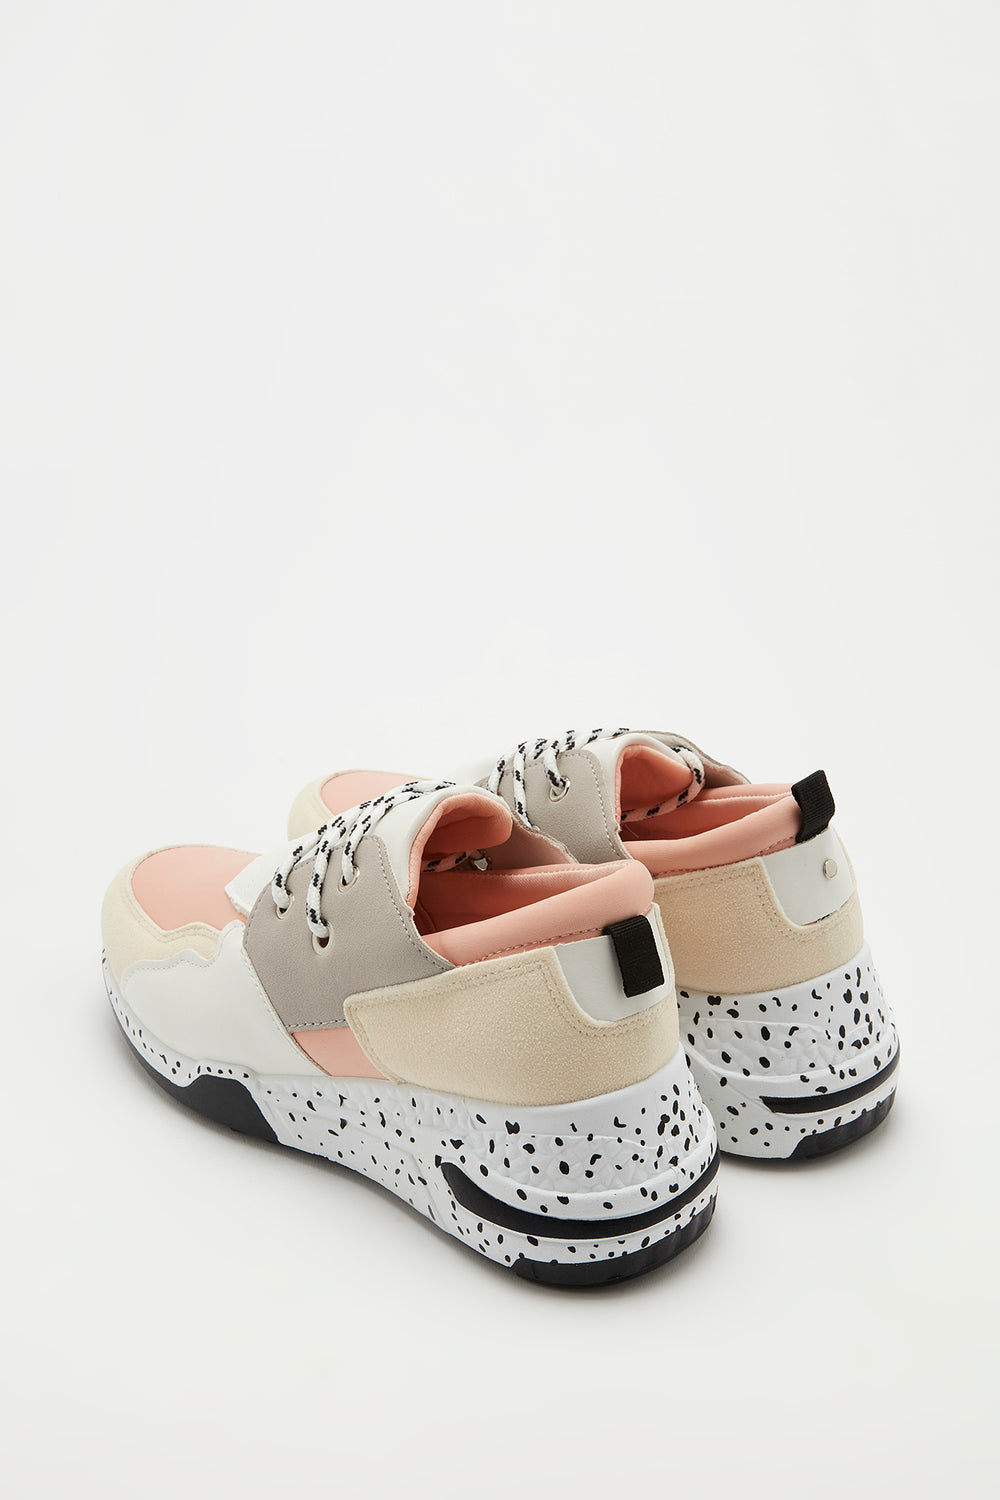 Lace-Up Speckle Outsole Sneaker Light Pink